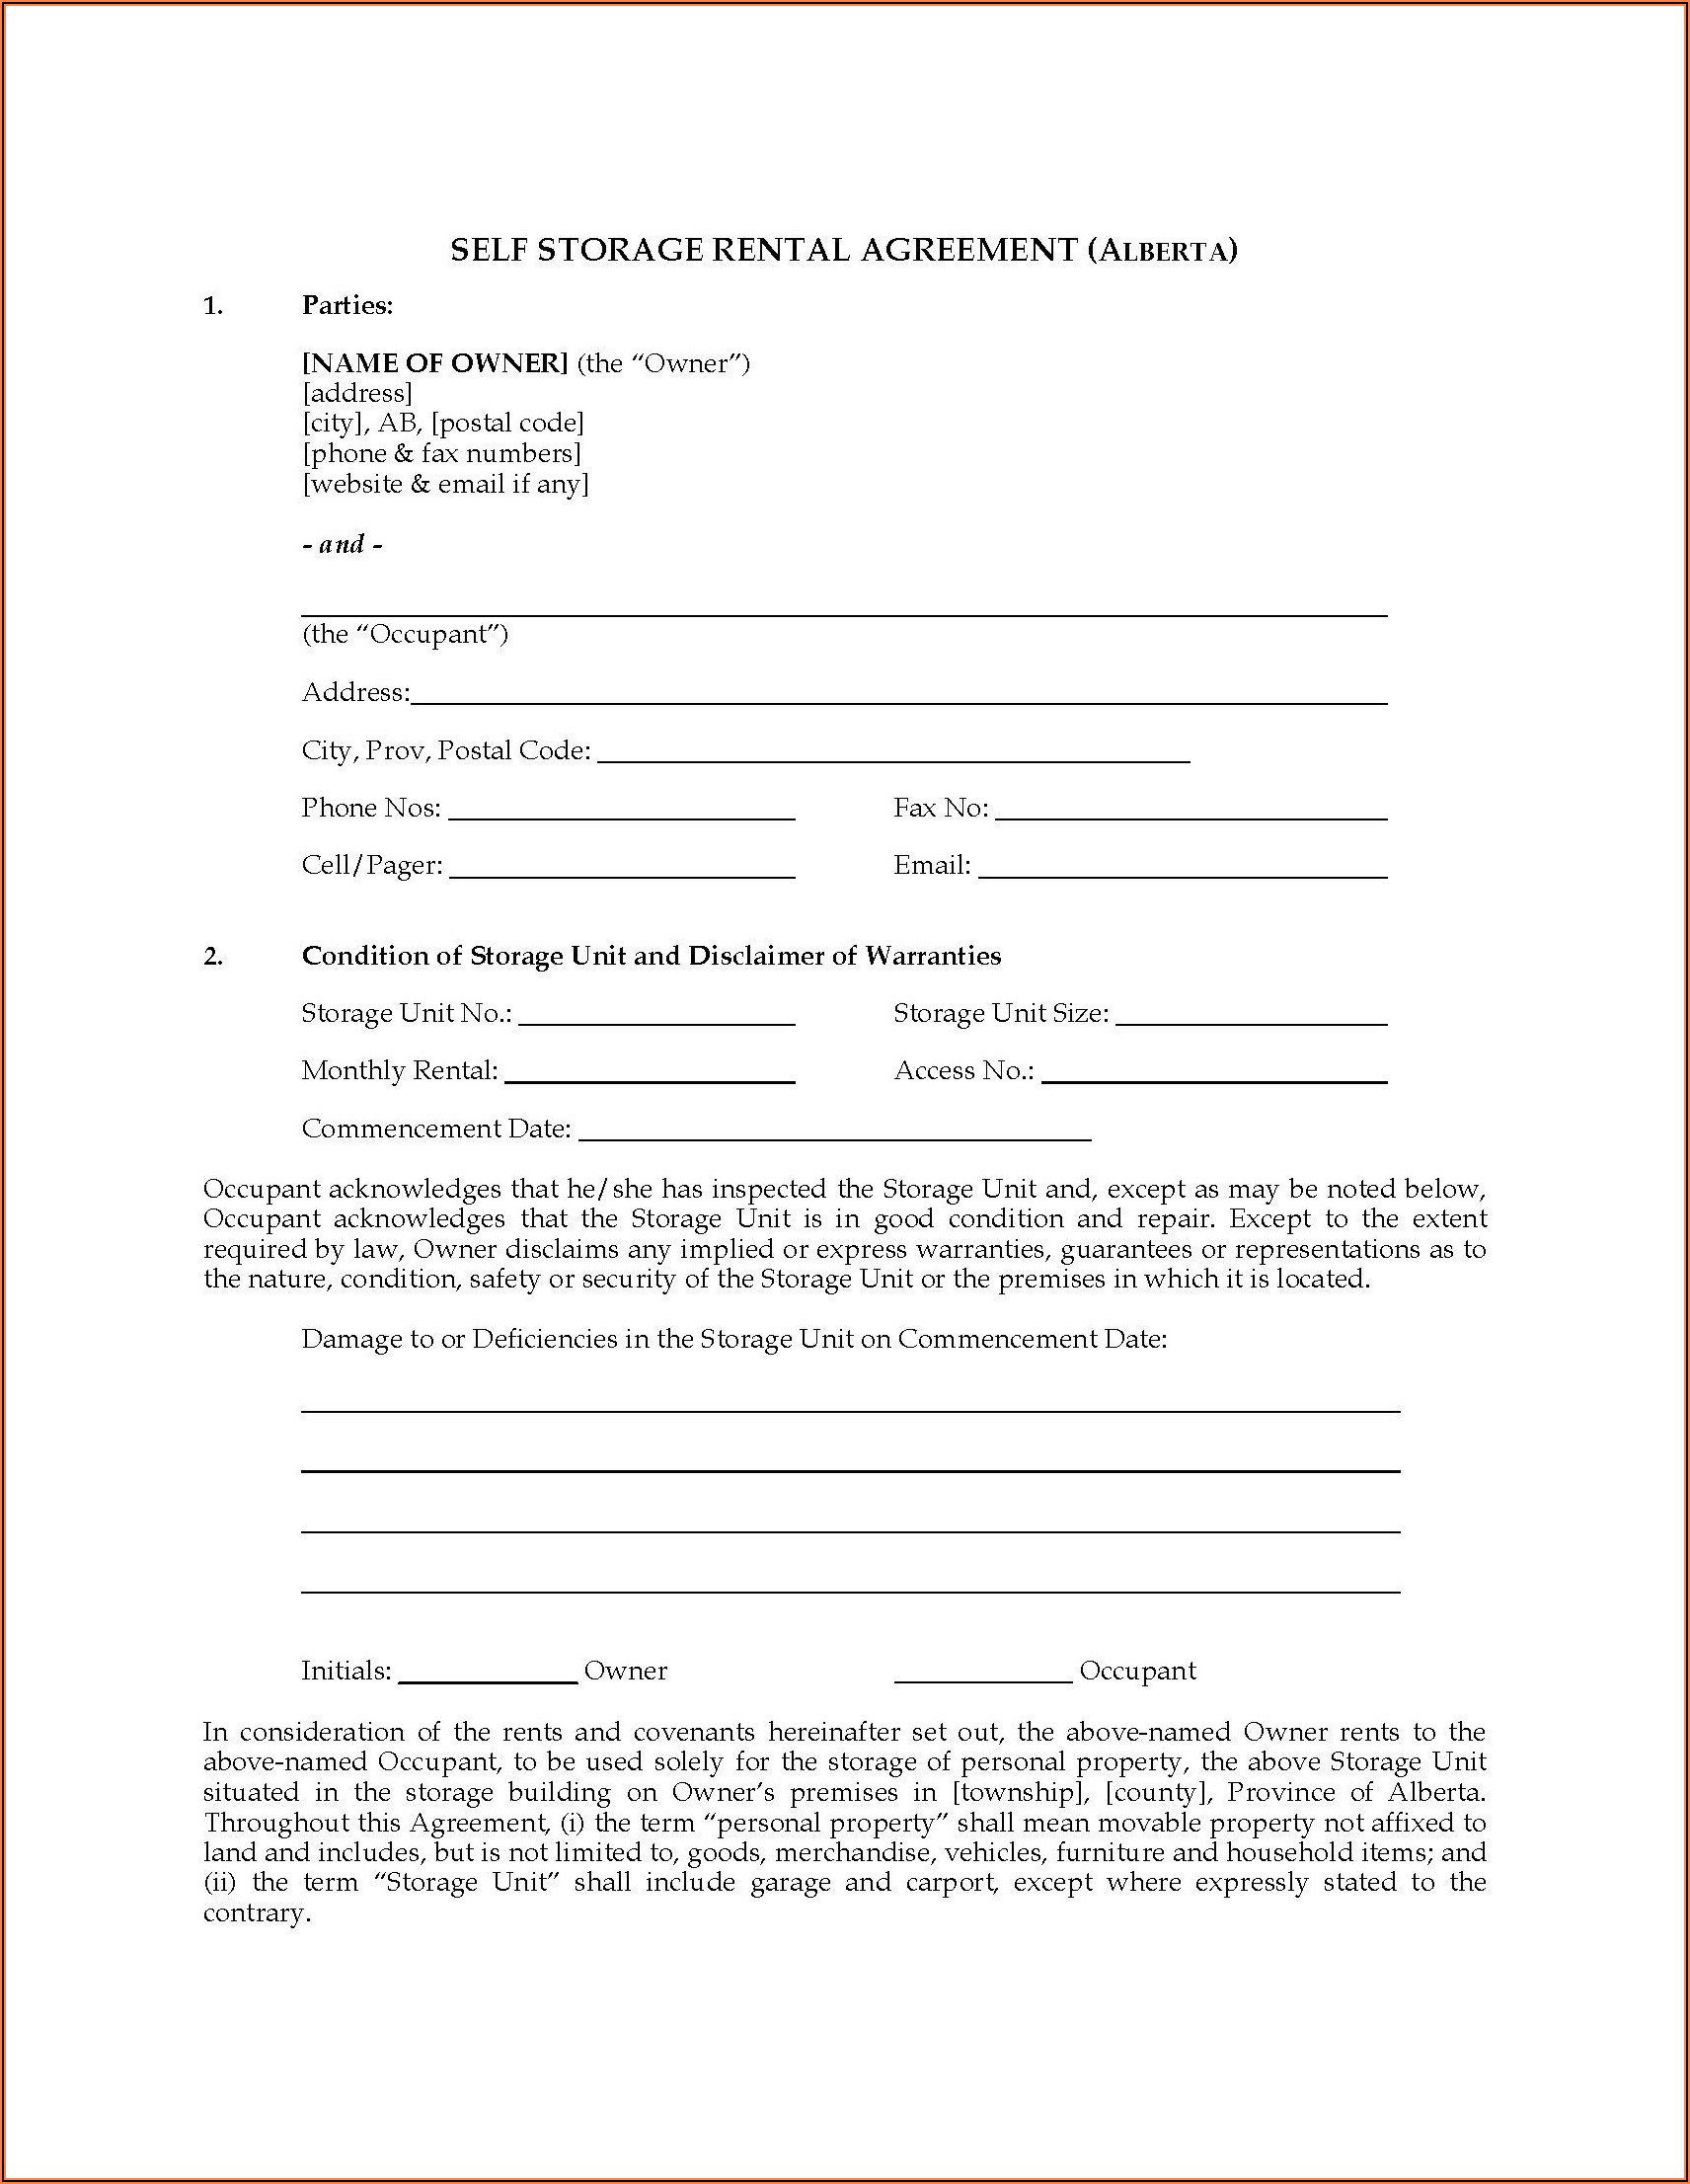 Alberta Rental Agreement Contract